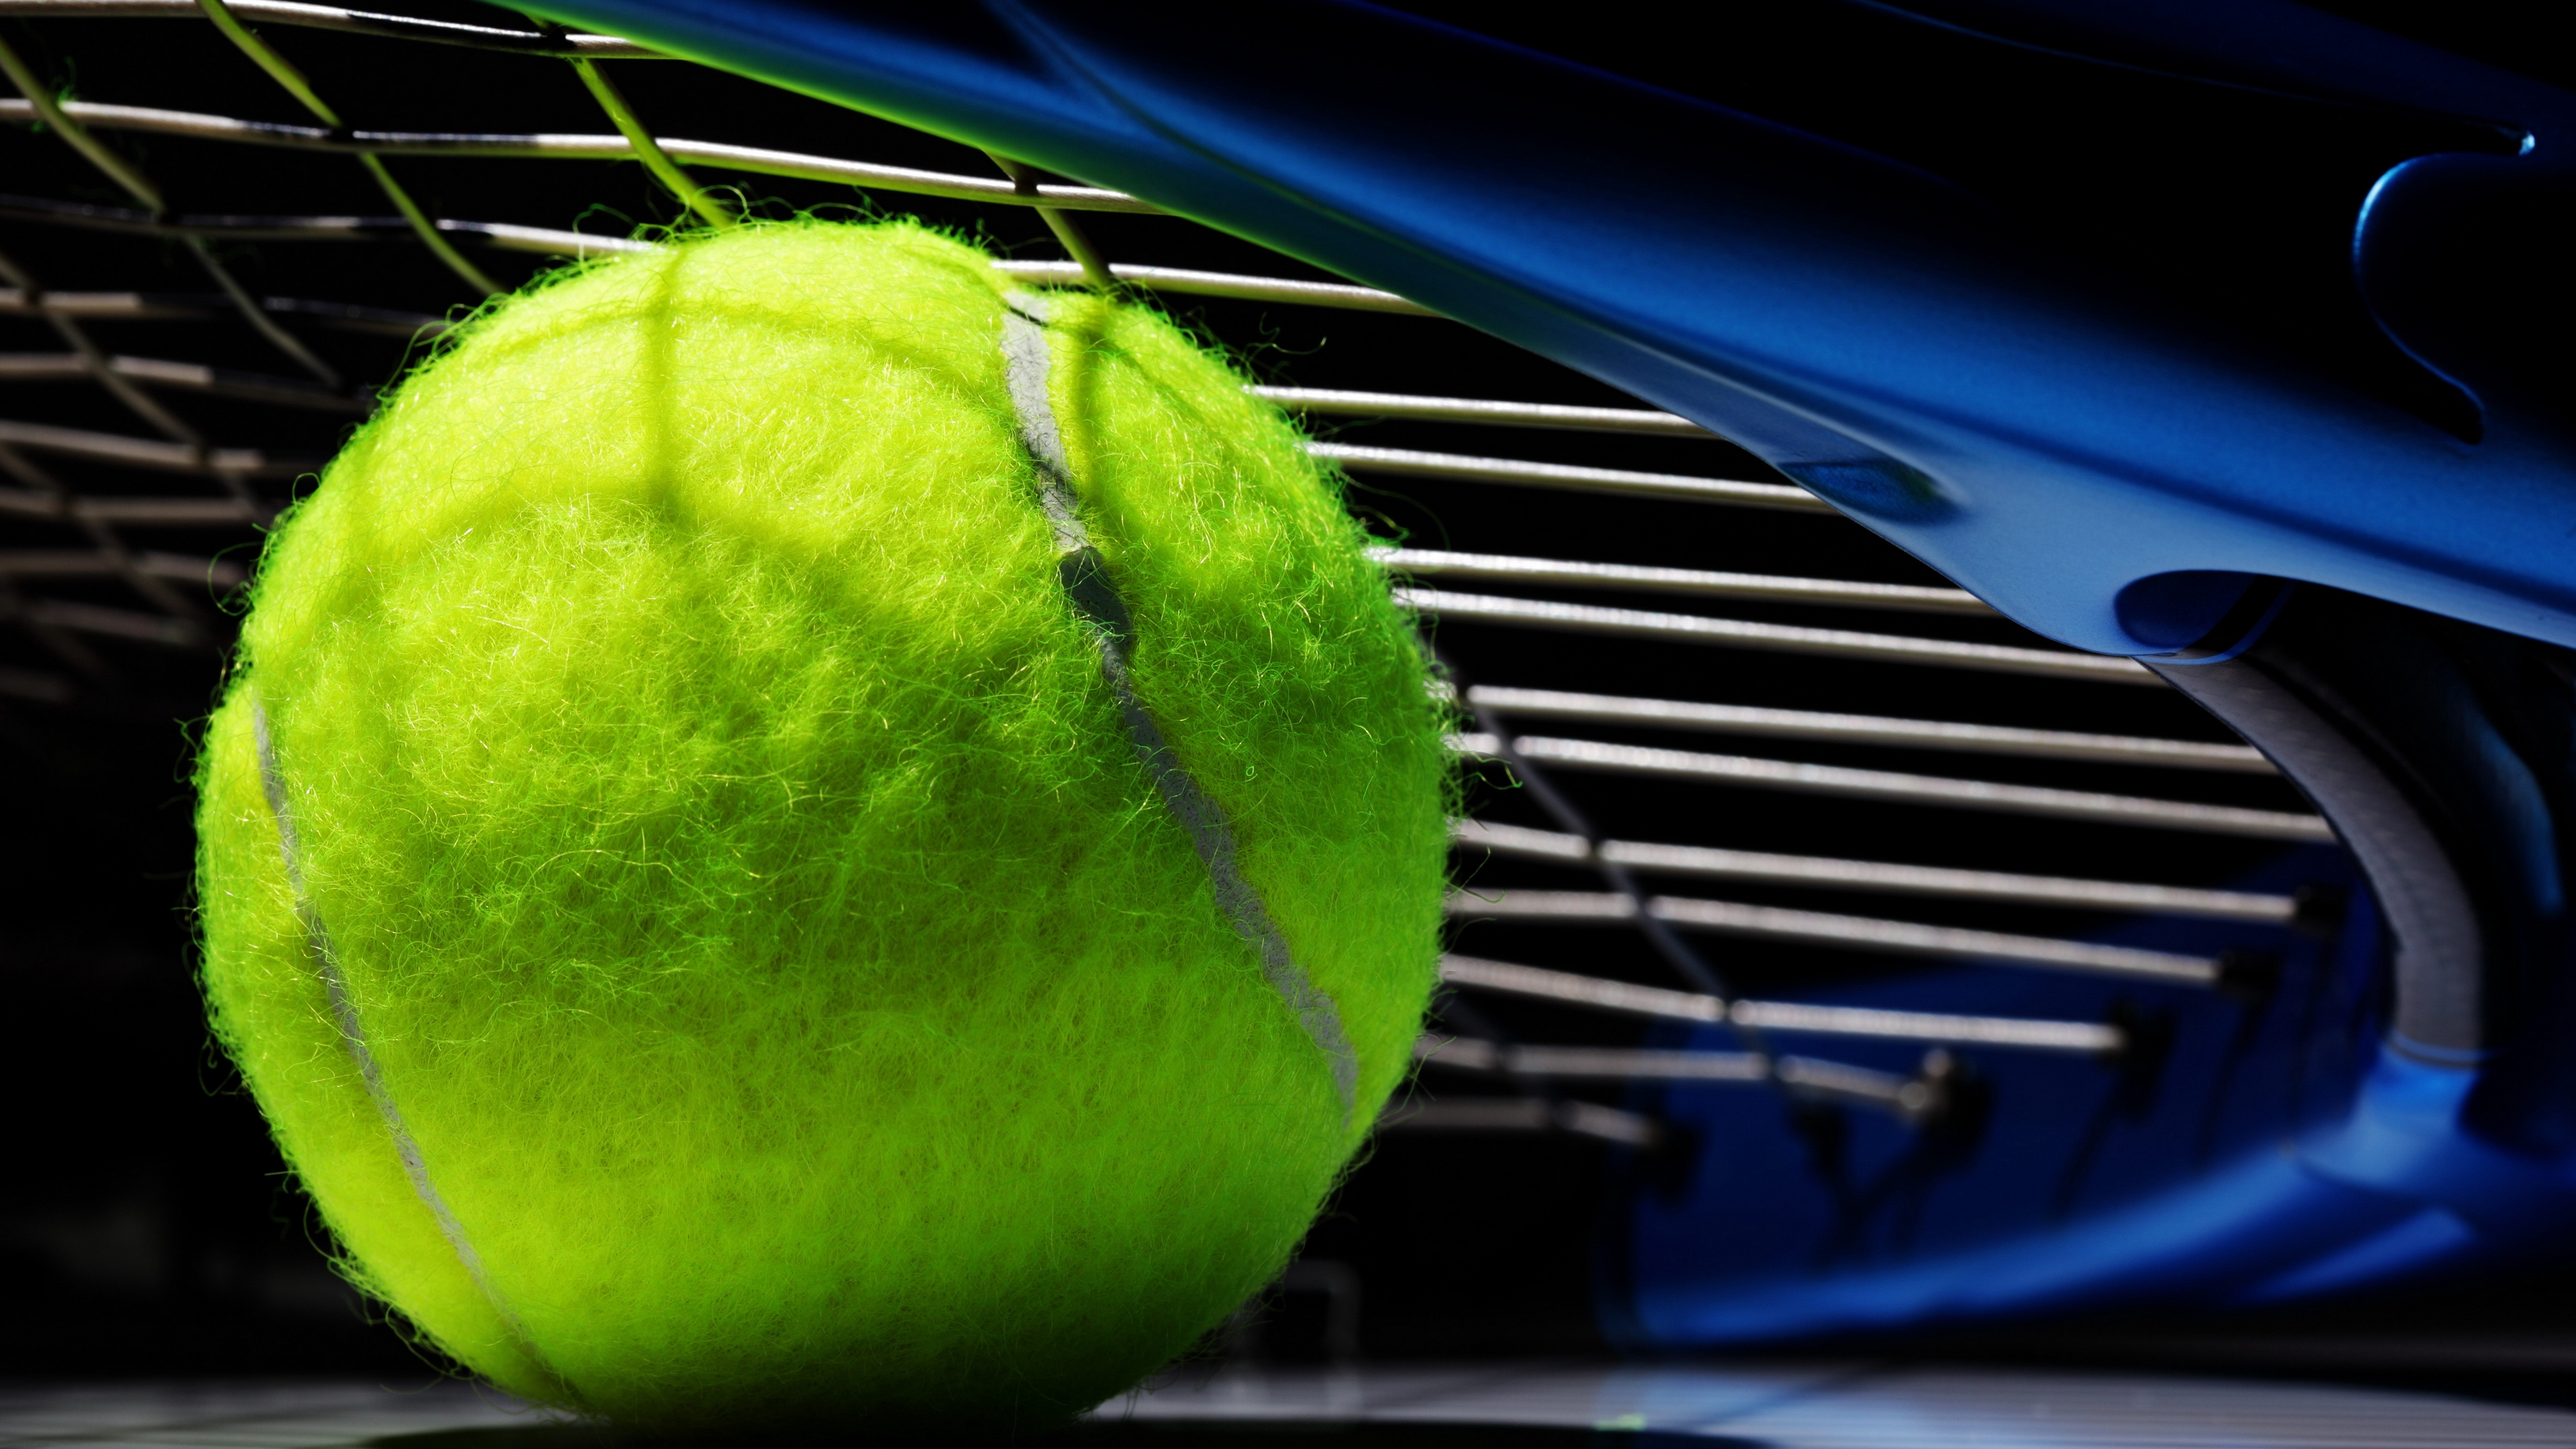 tennis ball bat black background 4k 1540063025 - tennis, ball, bat, black background 4k - Tennis, Bat, Ball